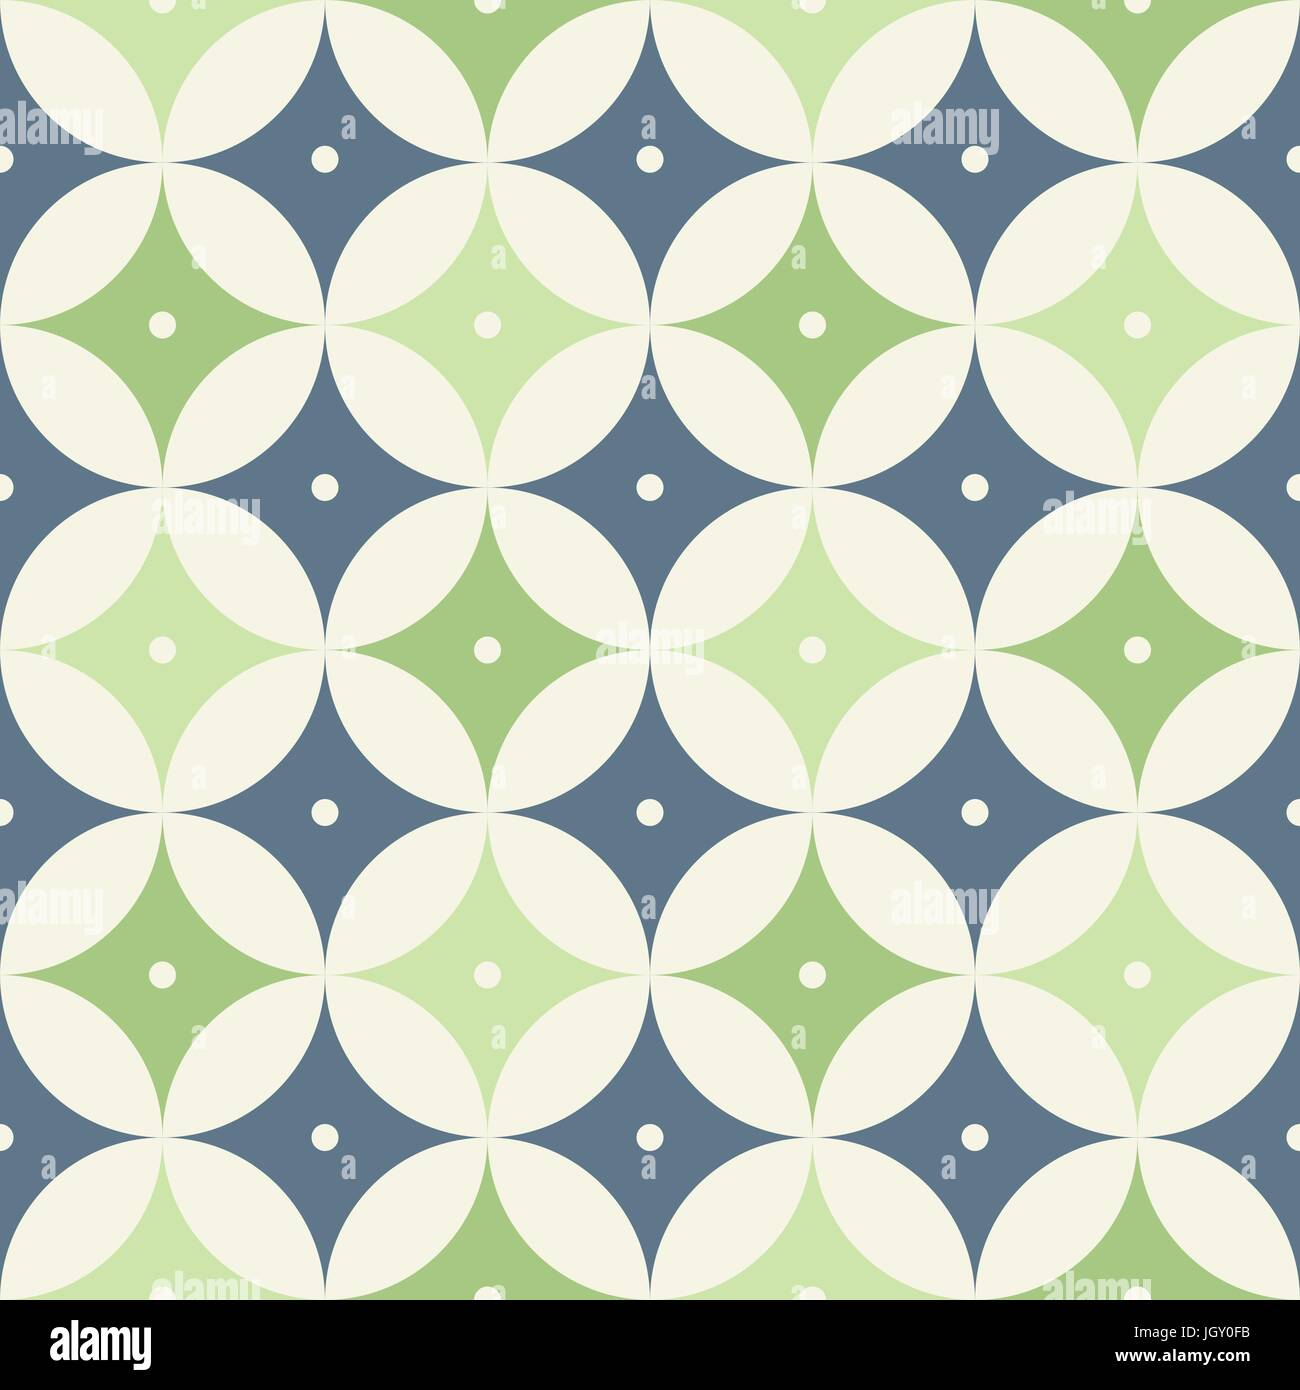 Mid Century Modern 1950s Style Vintage Retro Atomic Seamless Background Pattern Fully Editable Vector Illustration For Web And Print